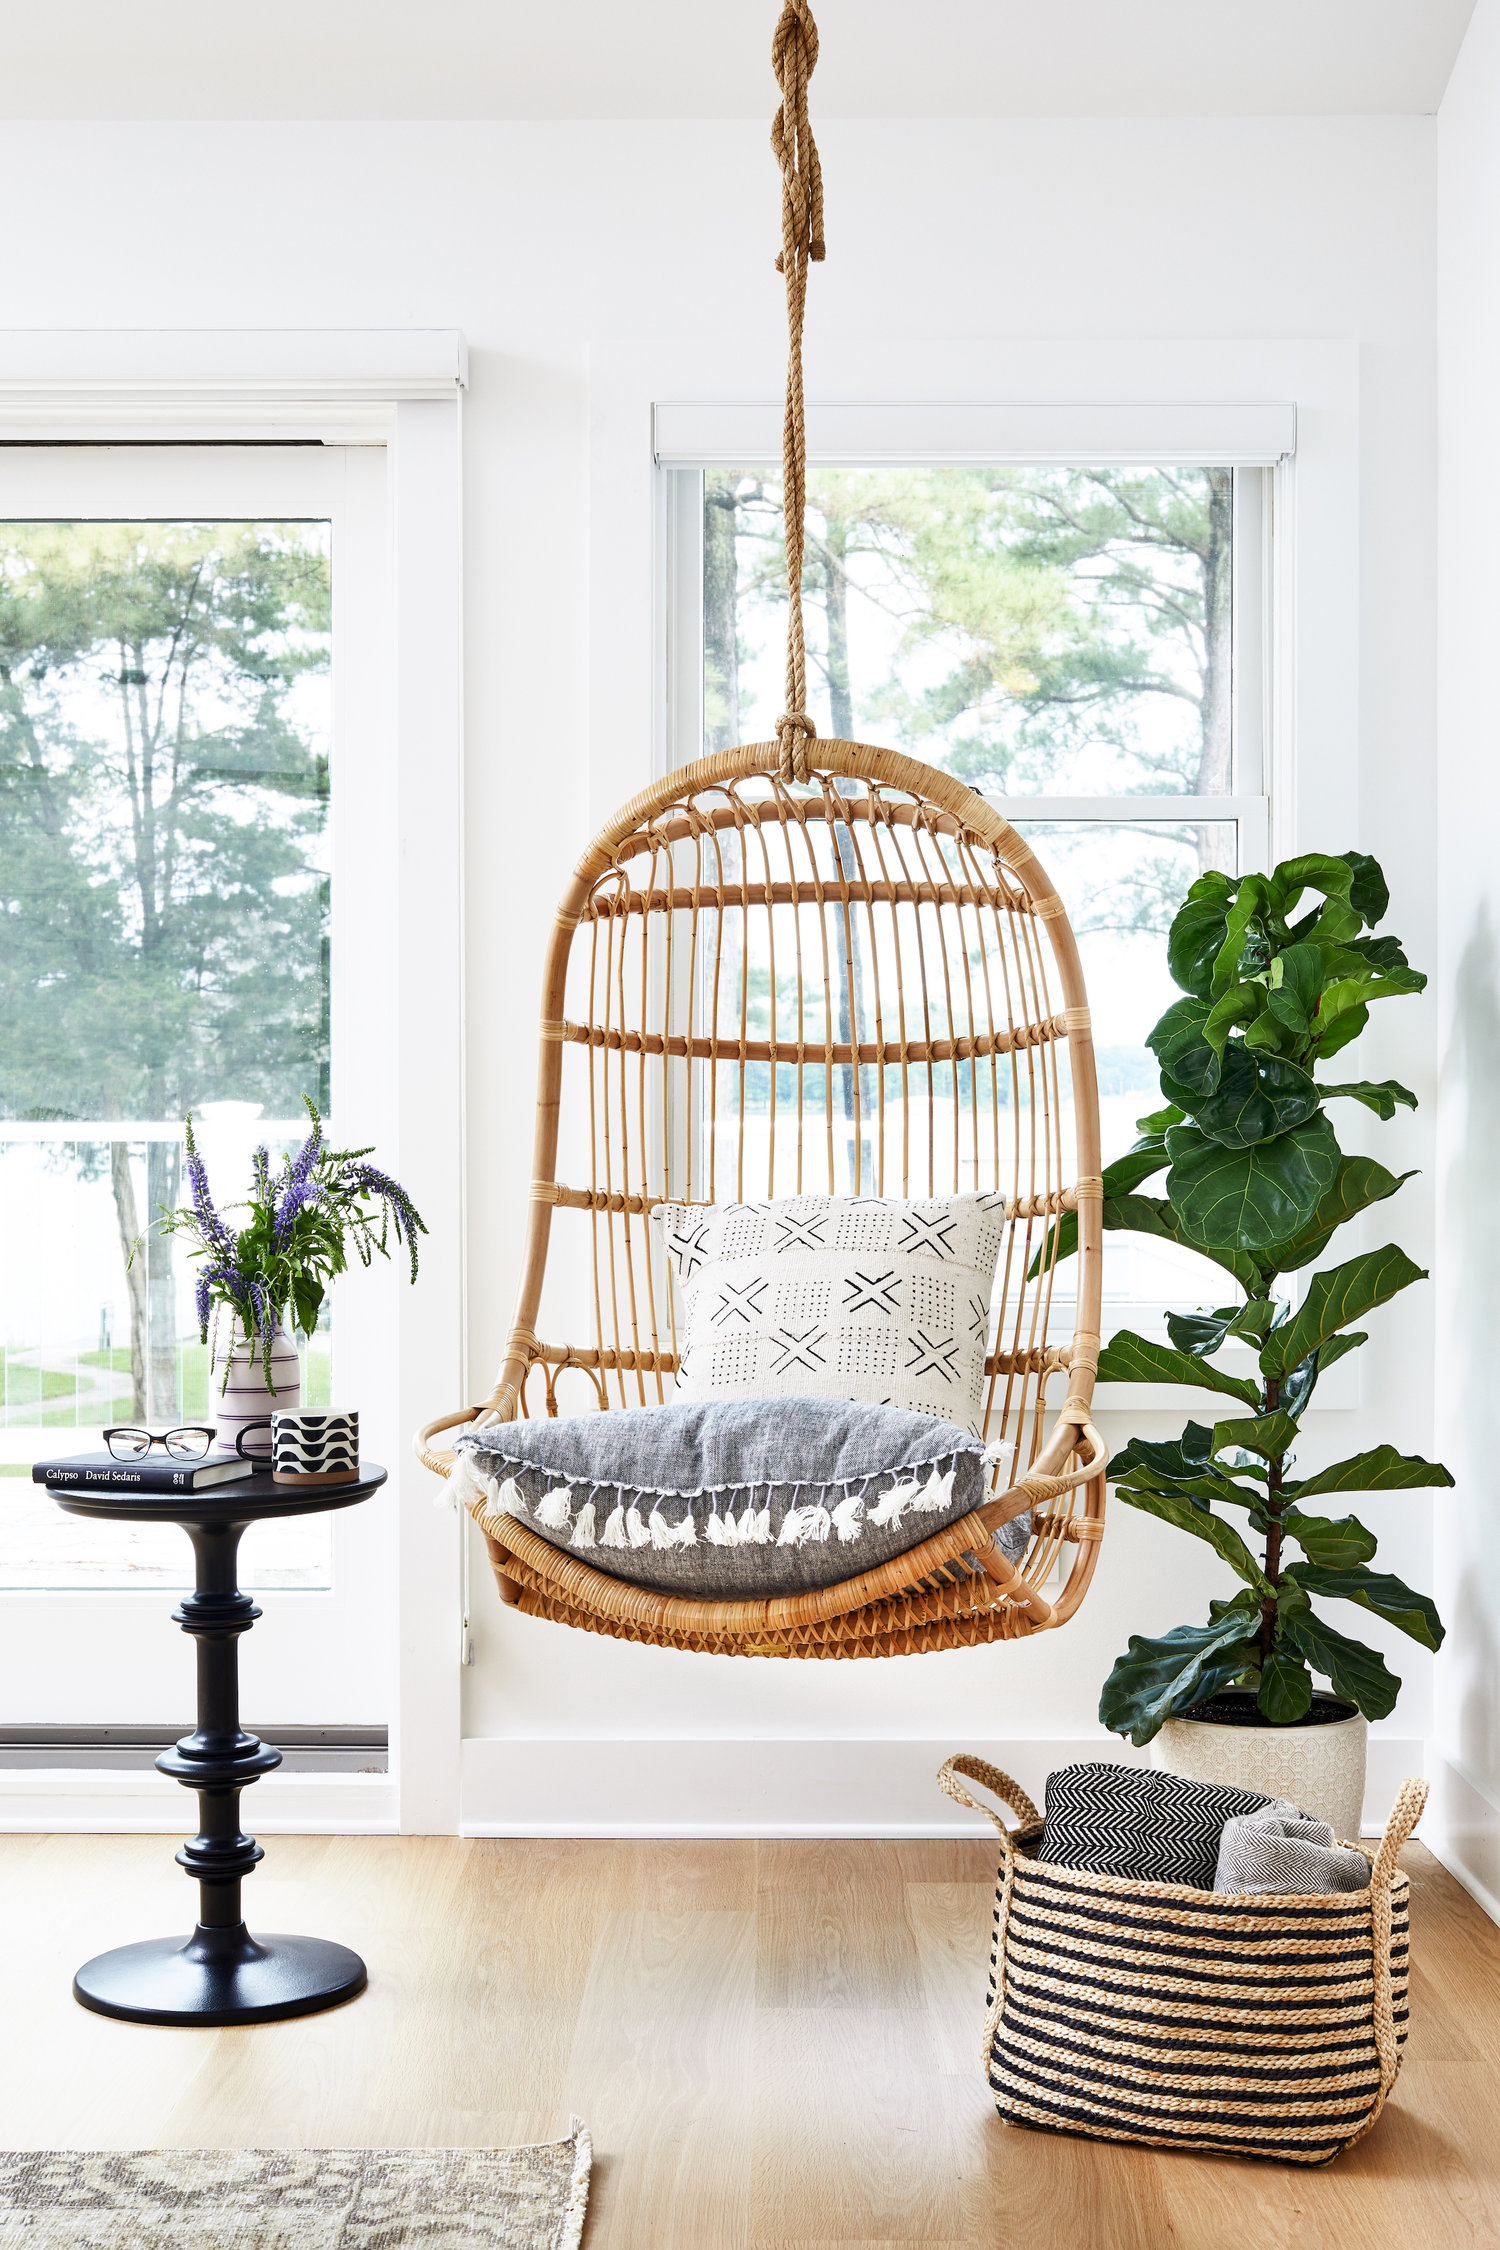 Stylish Boho Egg Chair - Image via Zoe Feldman Design, Photography by Stacy Zarin Goldberg feat. Hanging Rattan Chair from Serena and Lily.